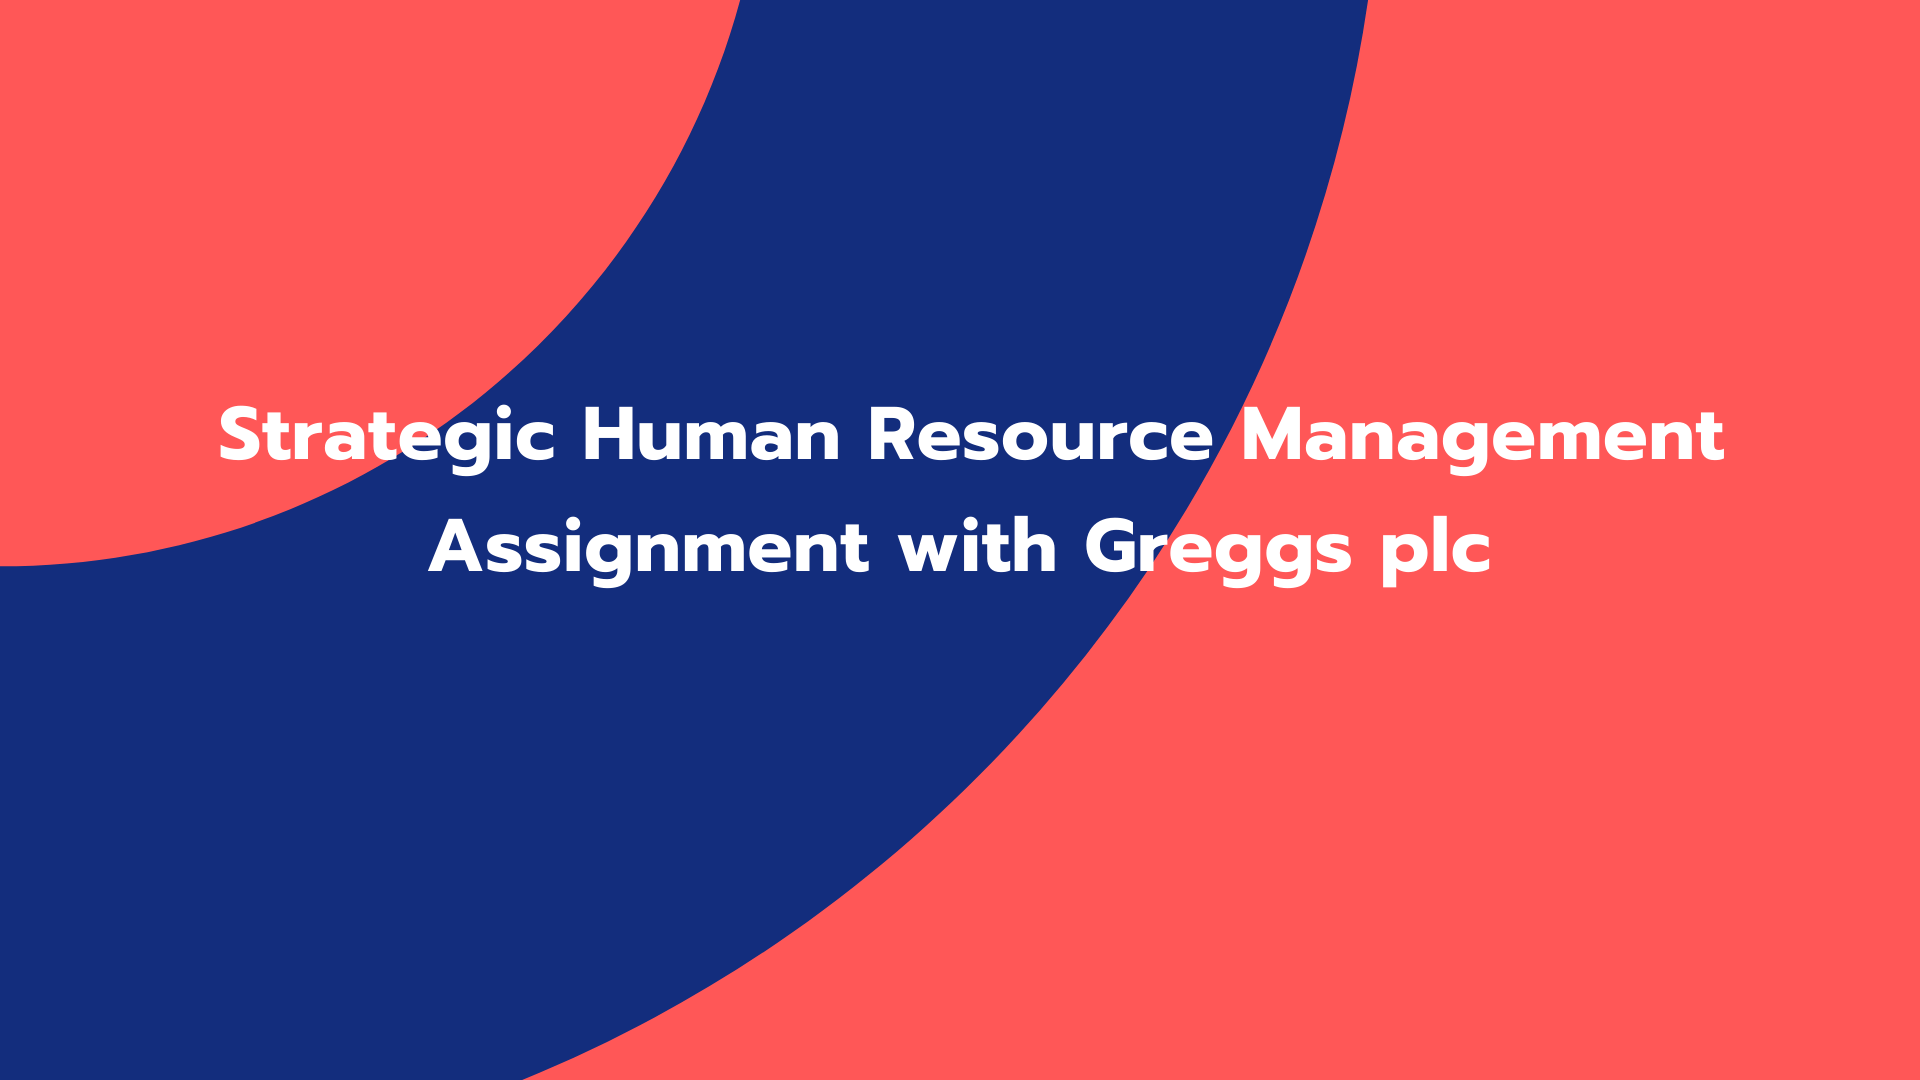 Strategic Human Resource Management Assignment with Greggs plc